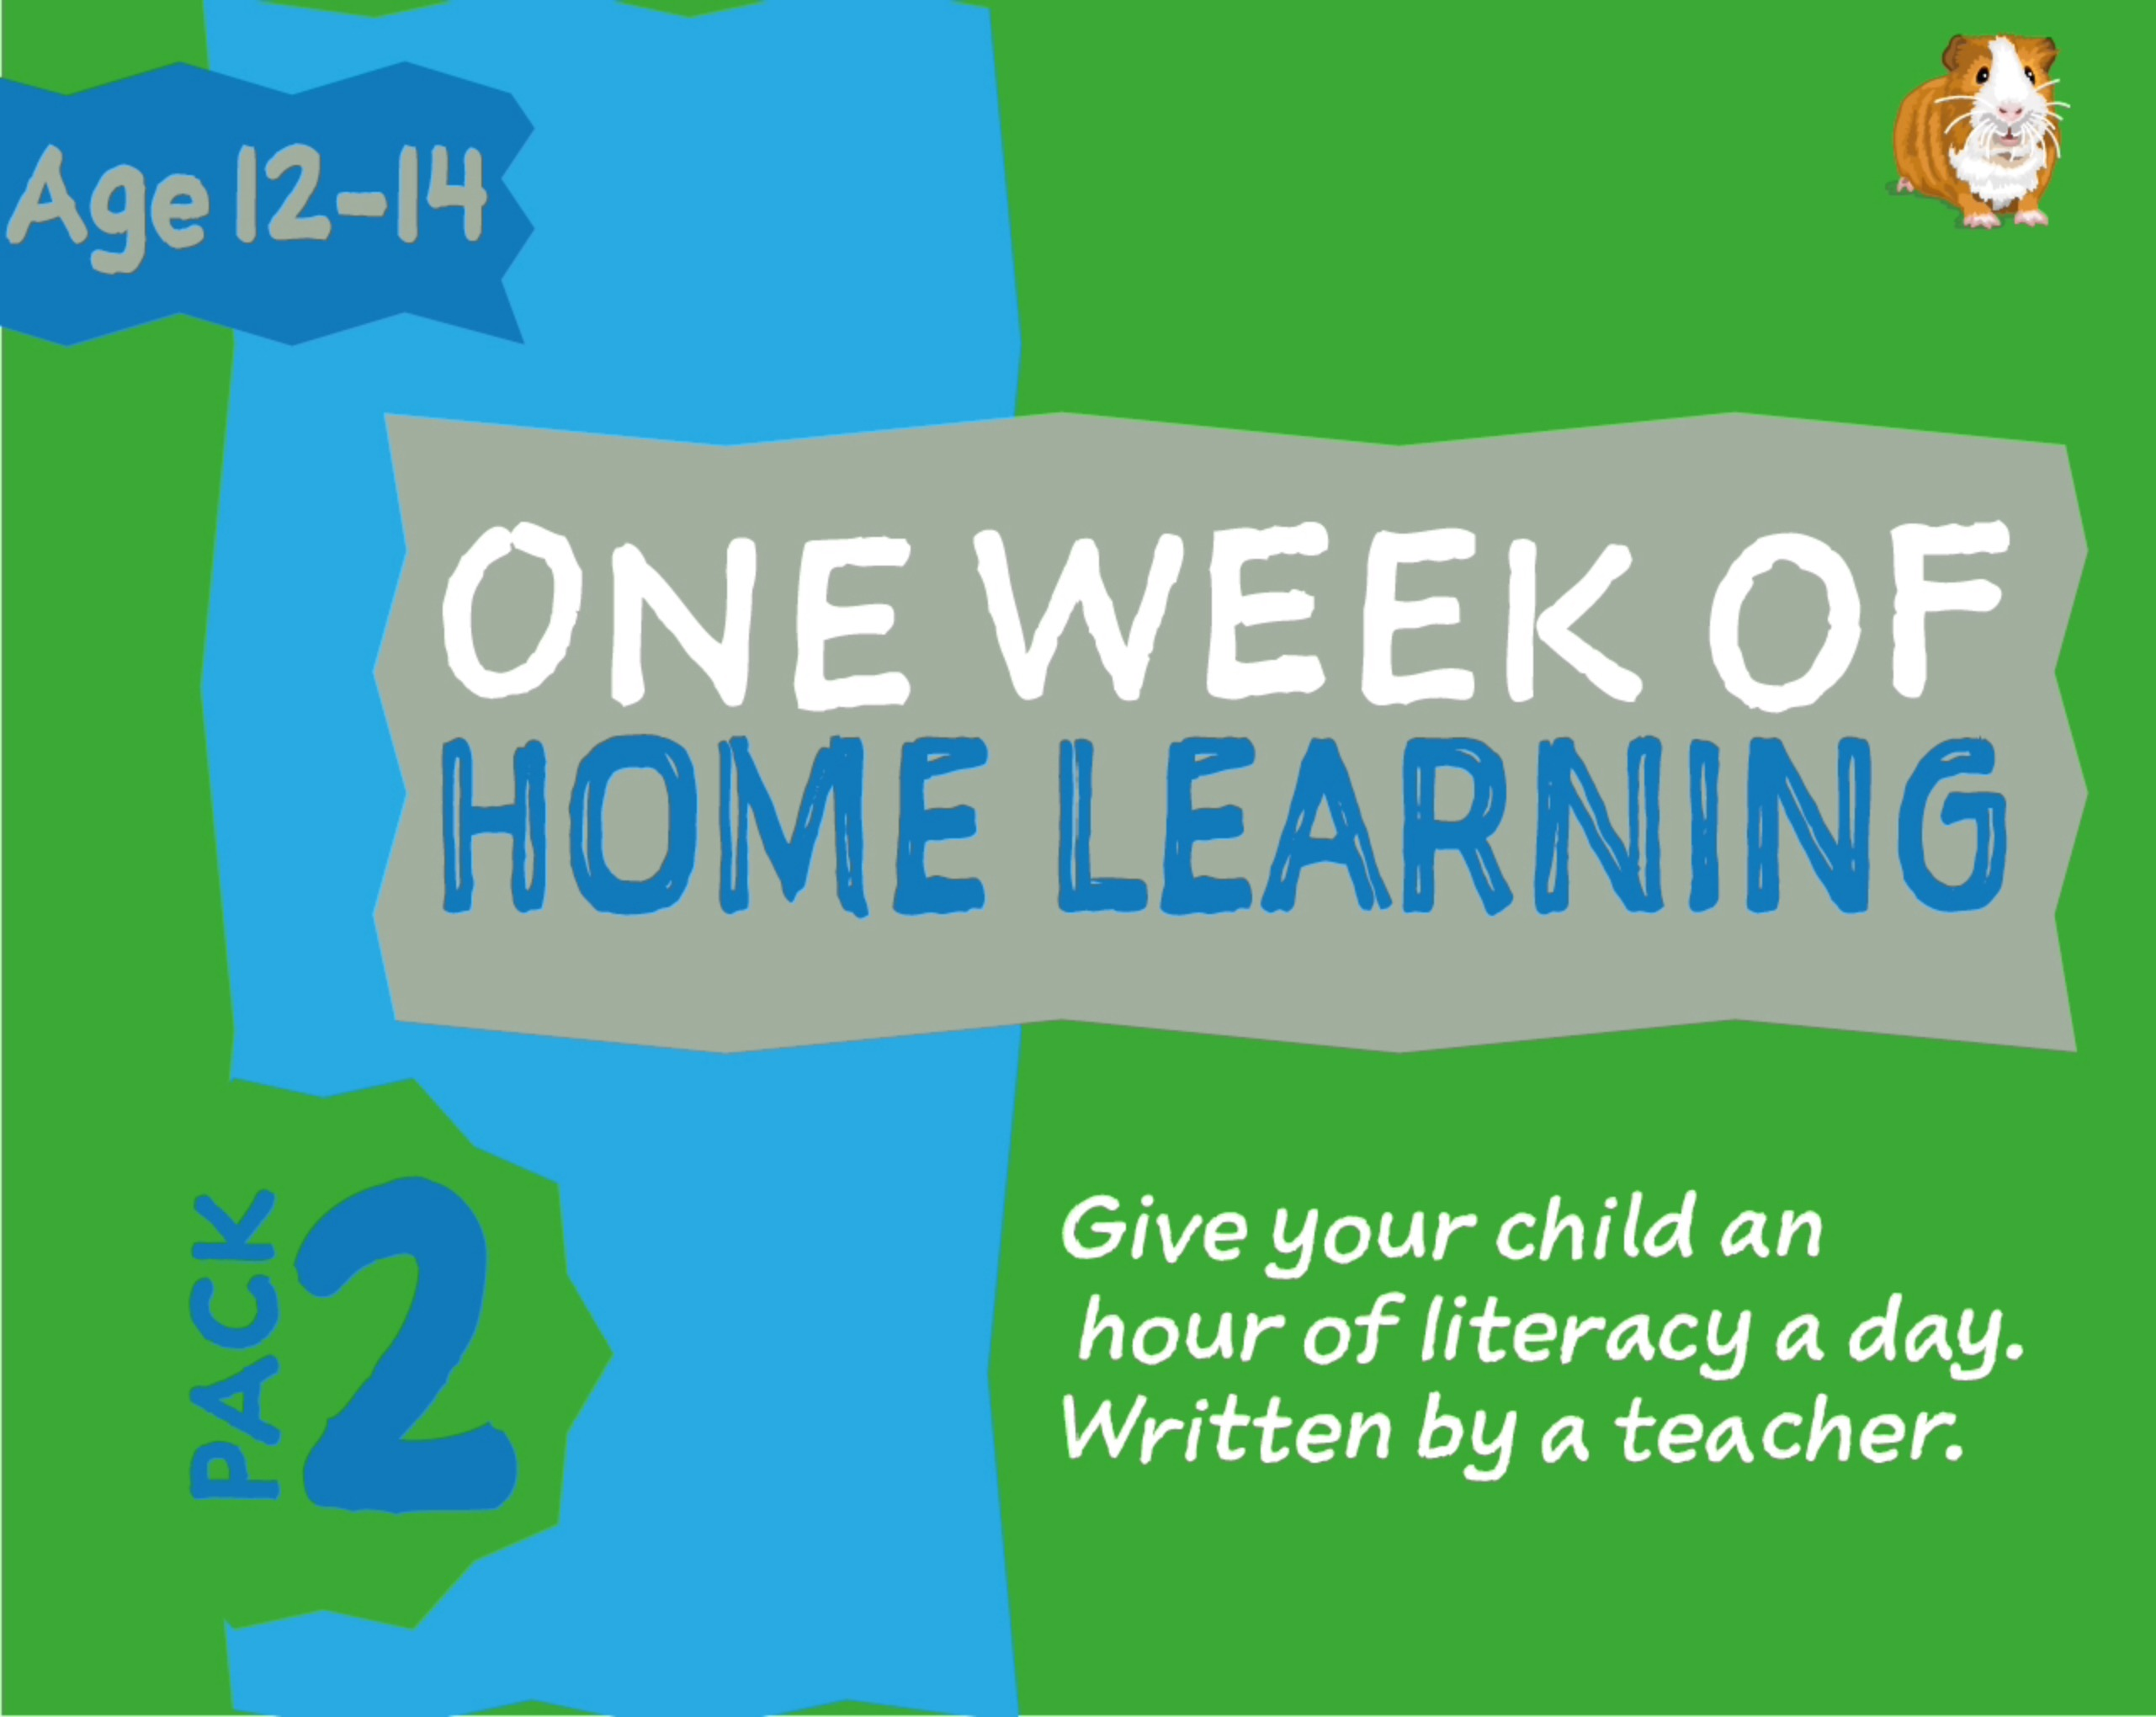 1 WEEK Literacy Distance Learning: Pack TWO (age 12-14 years) Grades 6-8